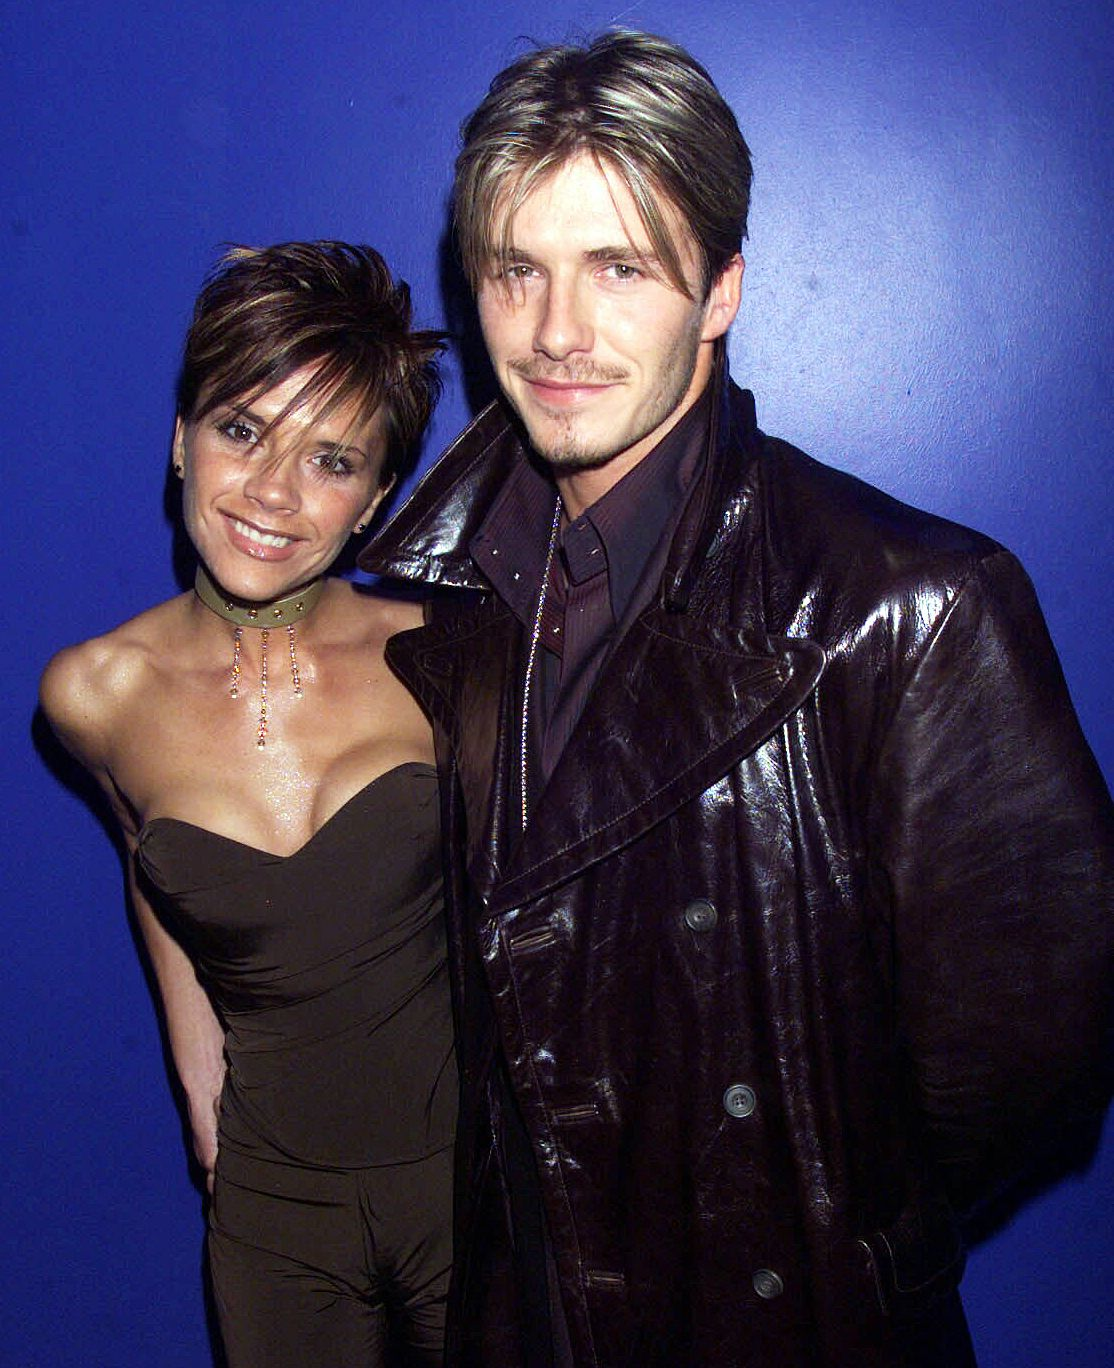 A young Victoria and David Beckham